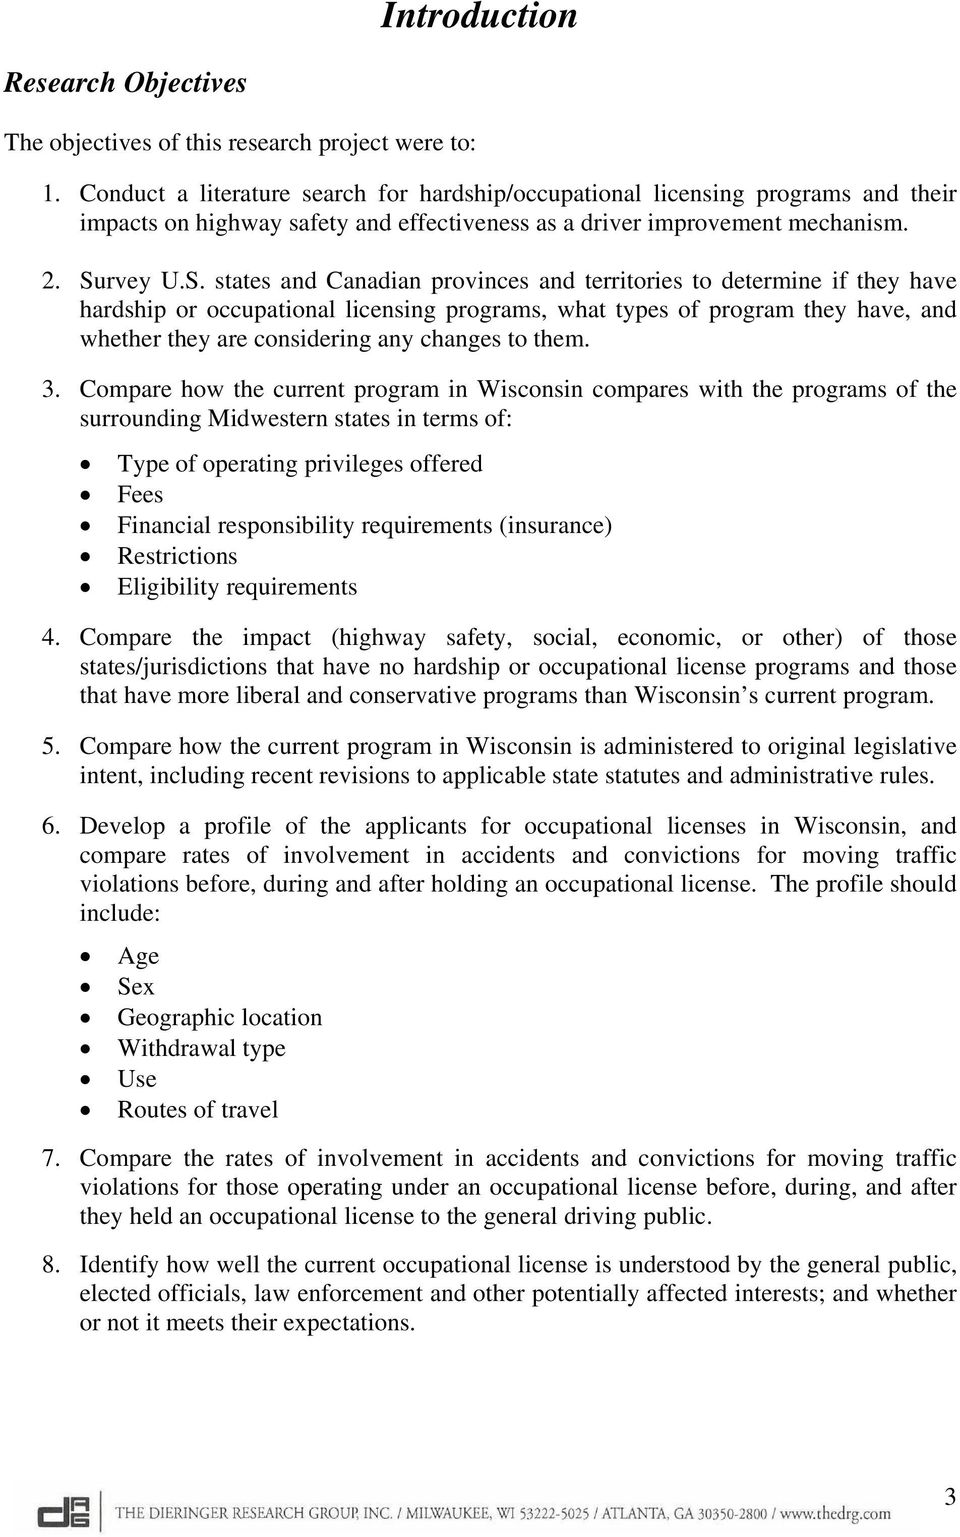 wisconsin occupational drivers license application